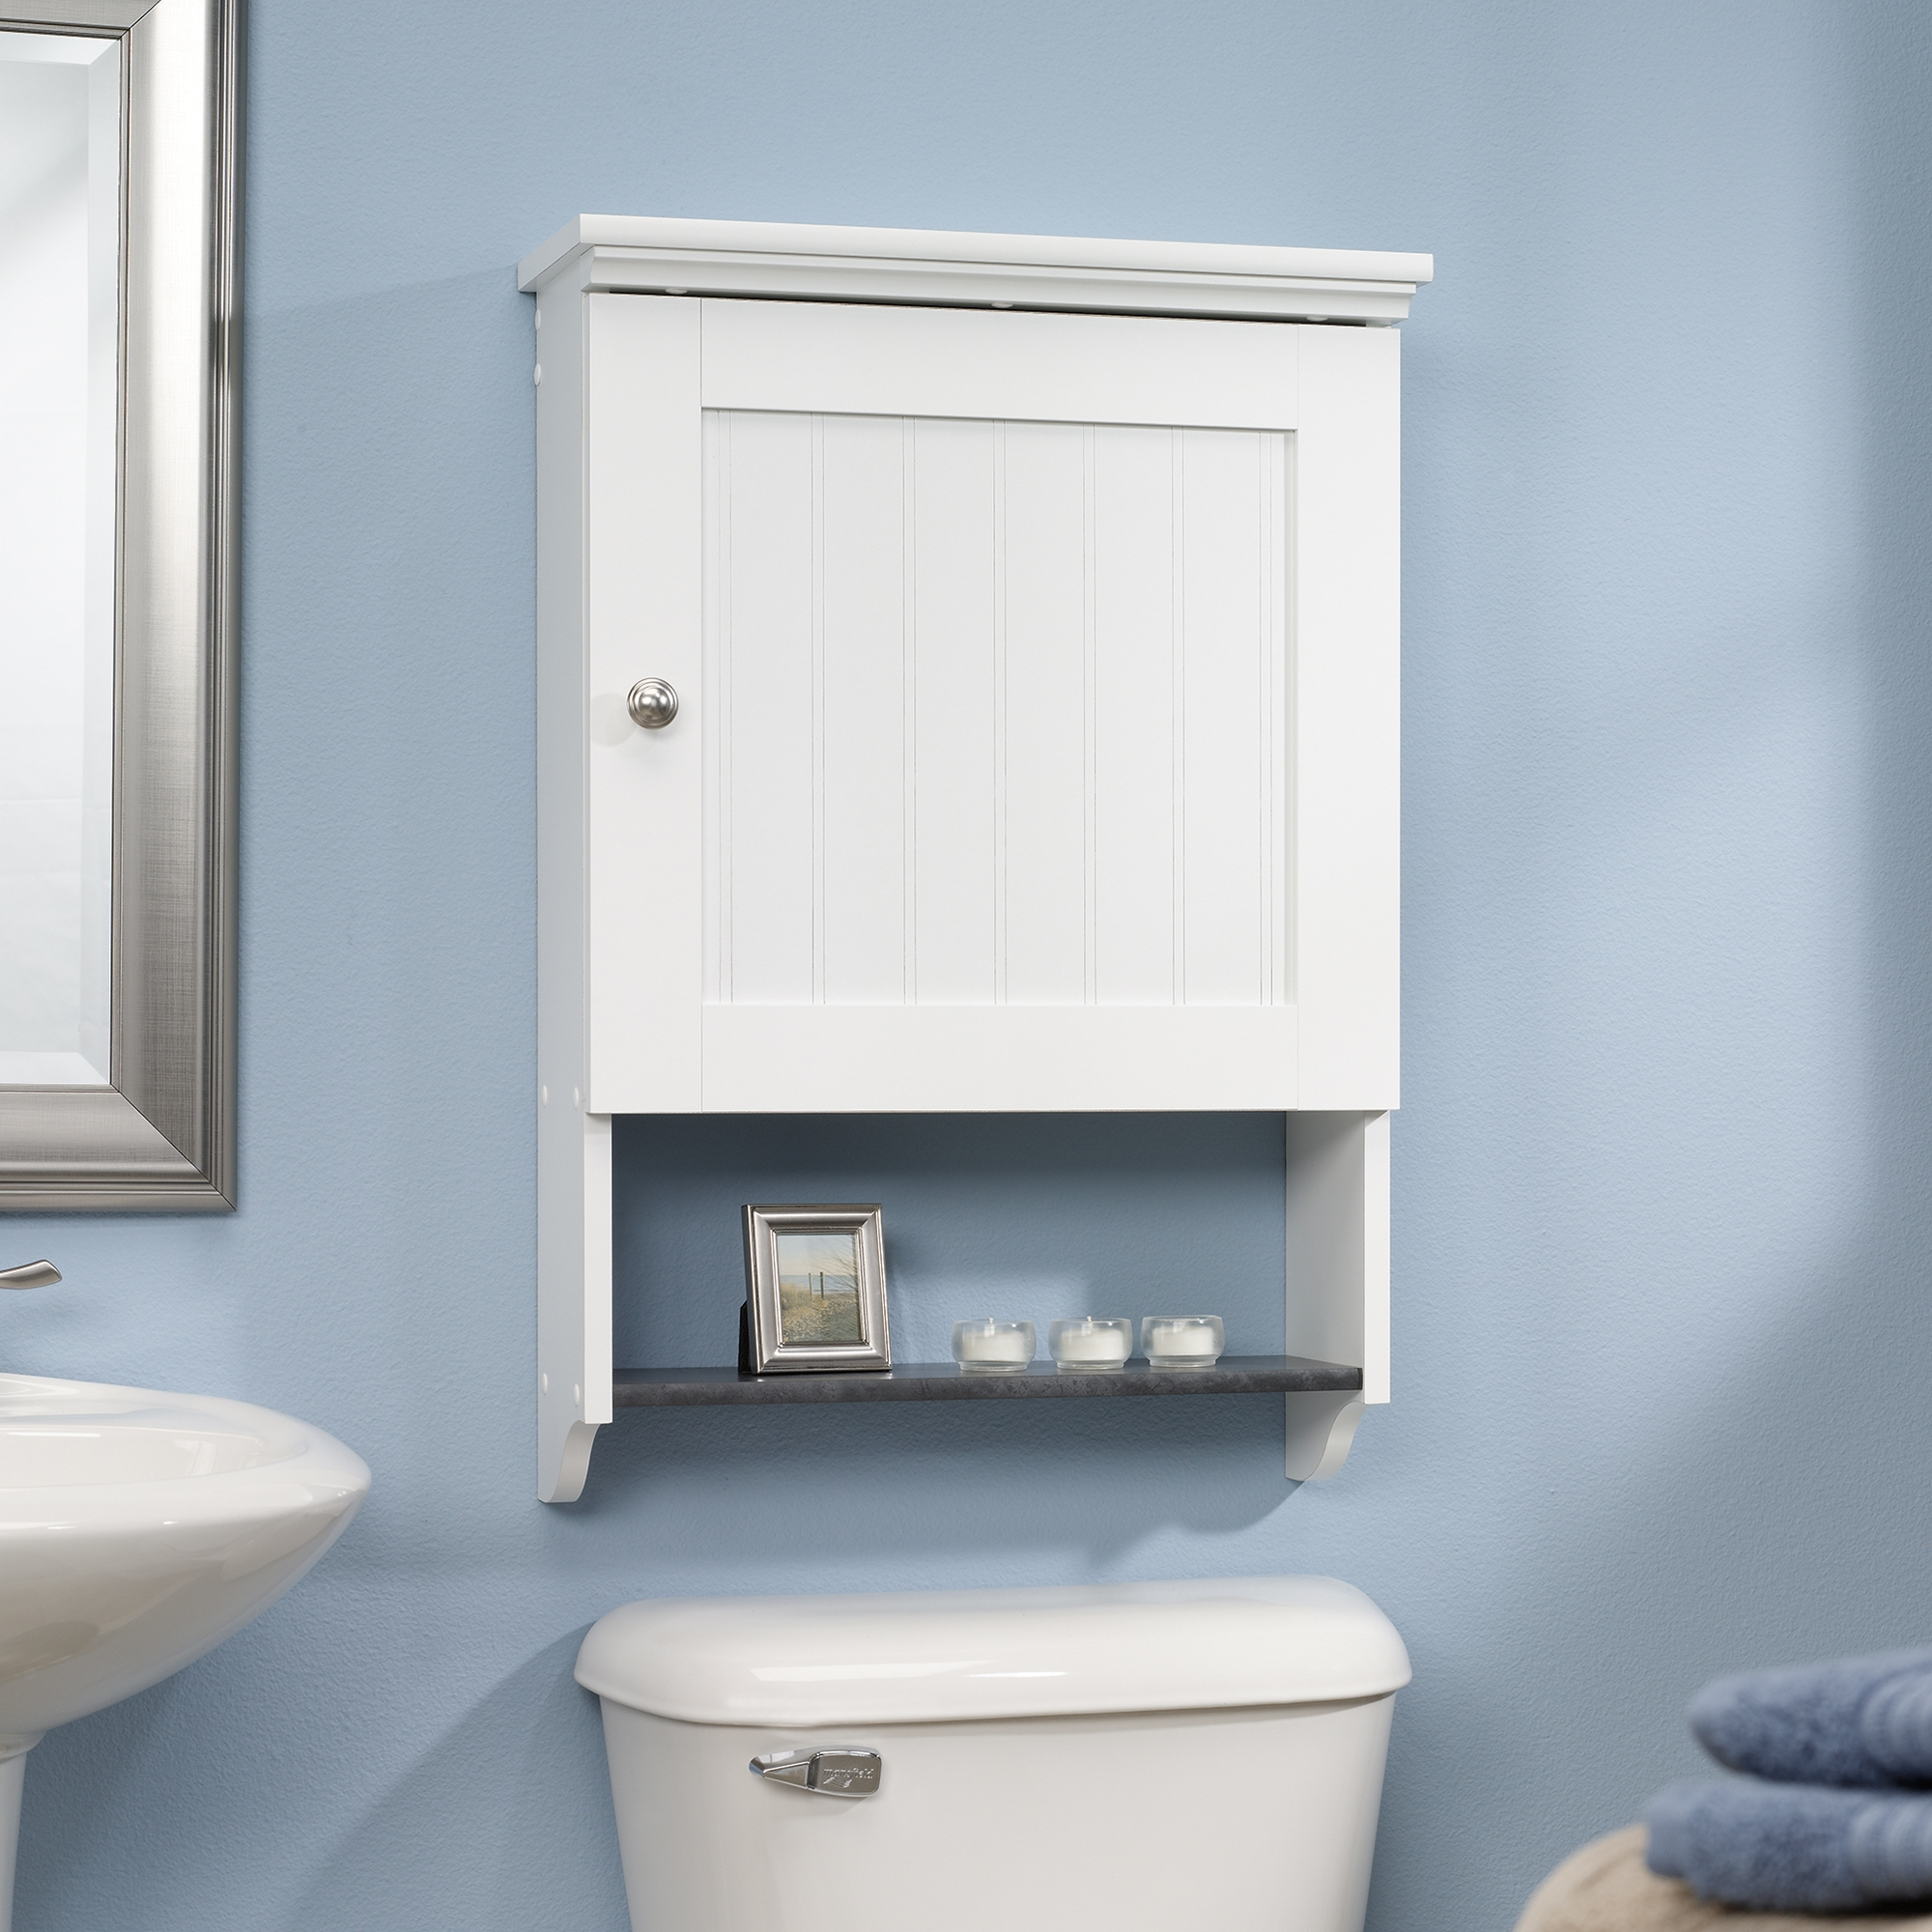 Permalink to Sauder Bathroom Storage Cabinets